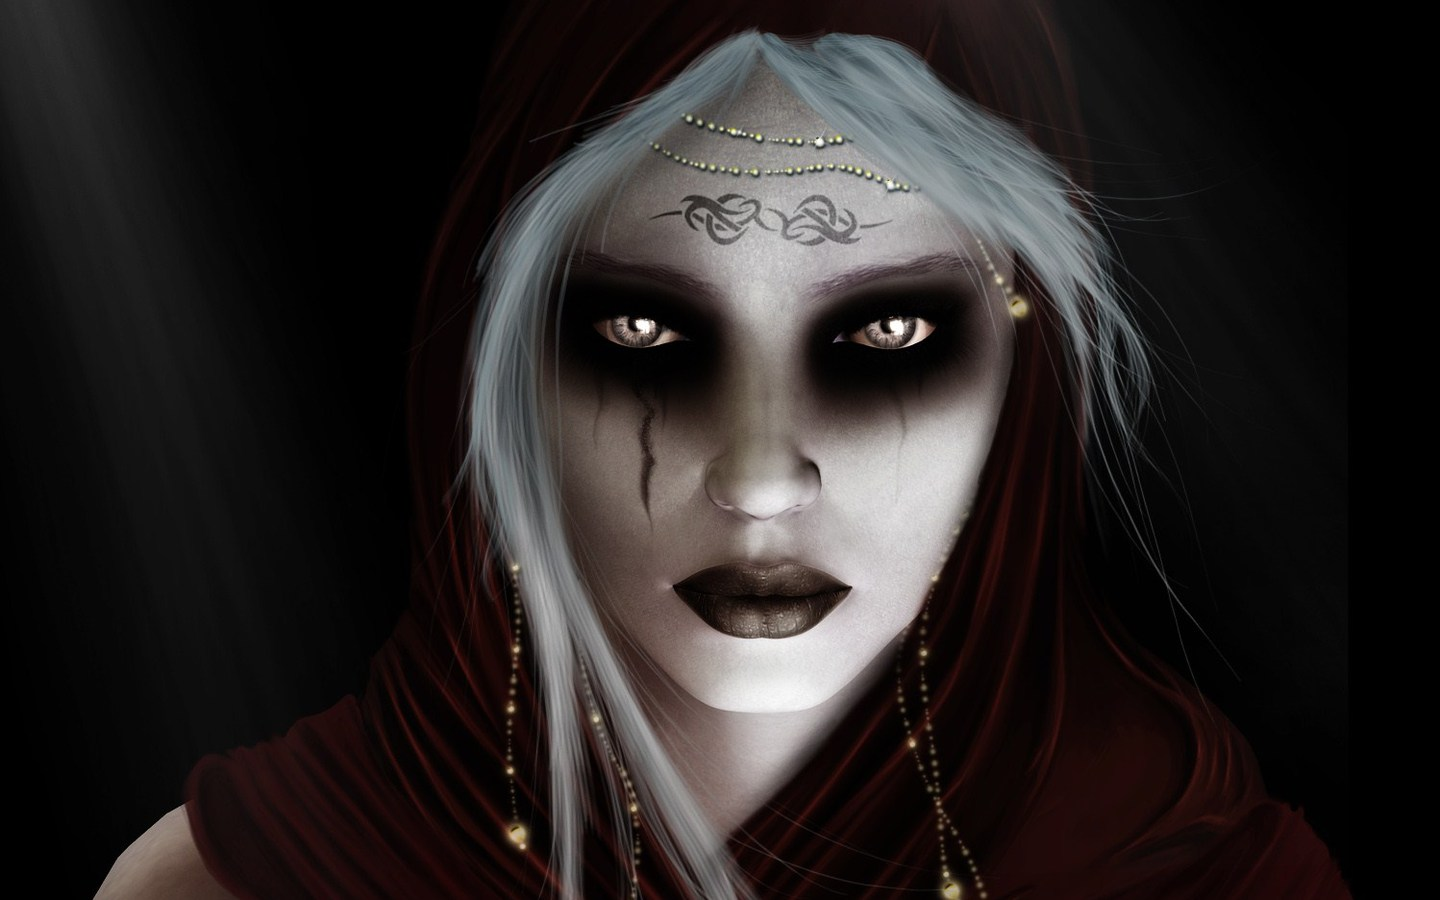 Wallpaper World Evil Witch Wallpapers 1440x900